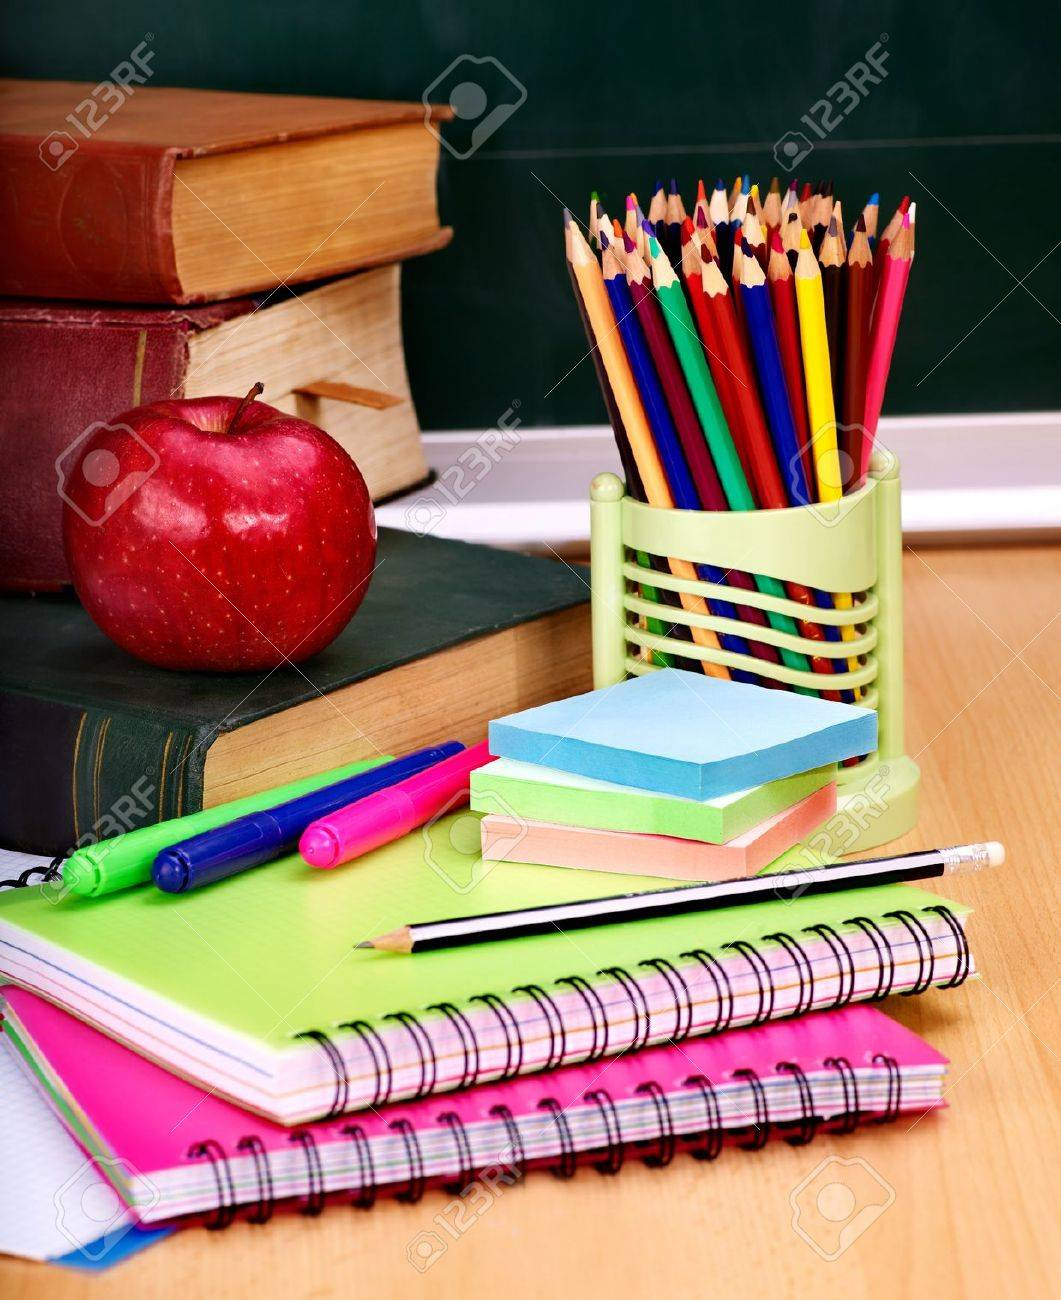 School supplies writing utensils stock photo picture and royalty school supplies writing utensils stock photo 10217368 voltagebd Images